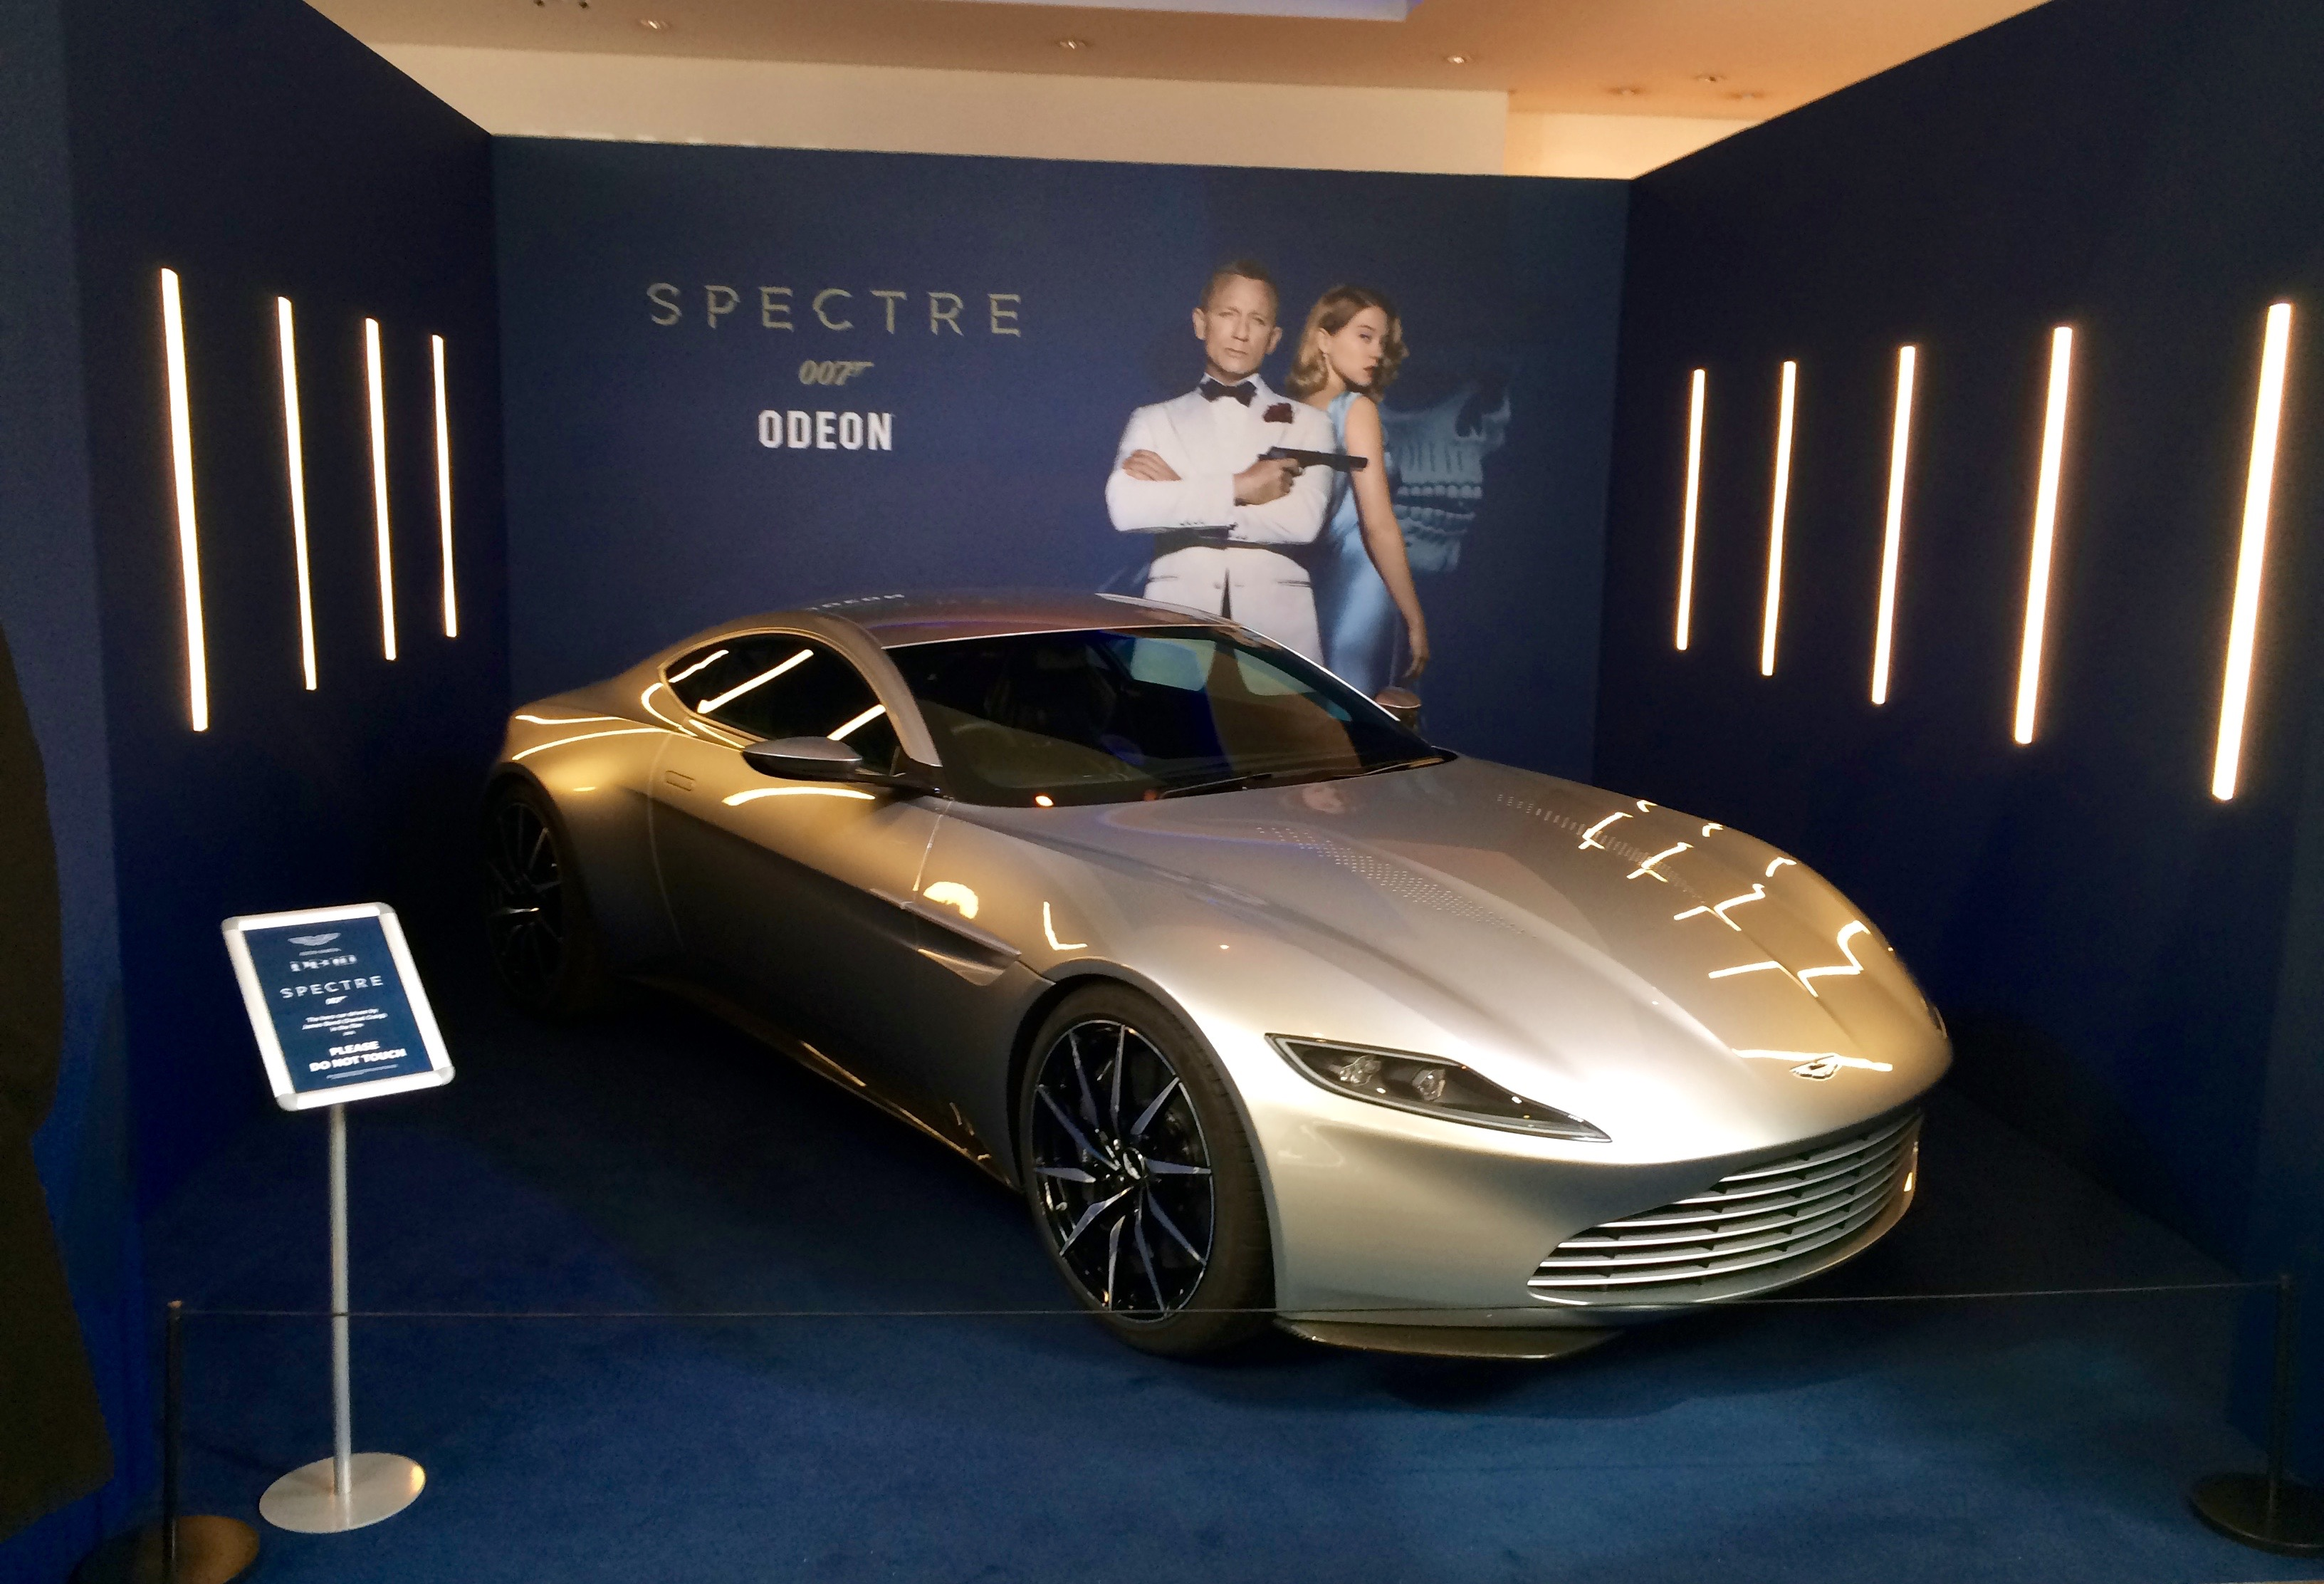 james bond spectre  u2013 odeon leicester square